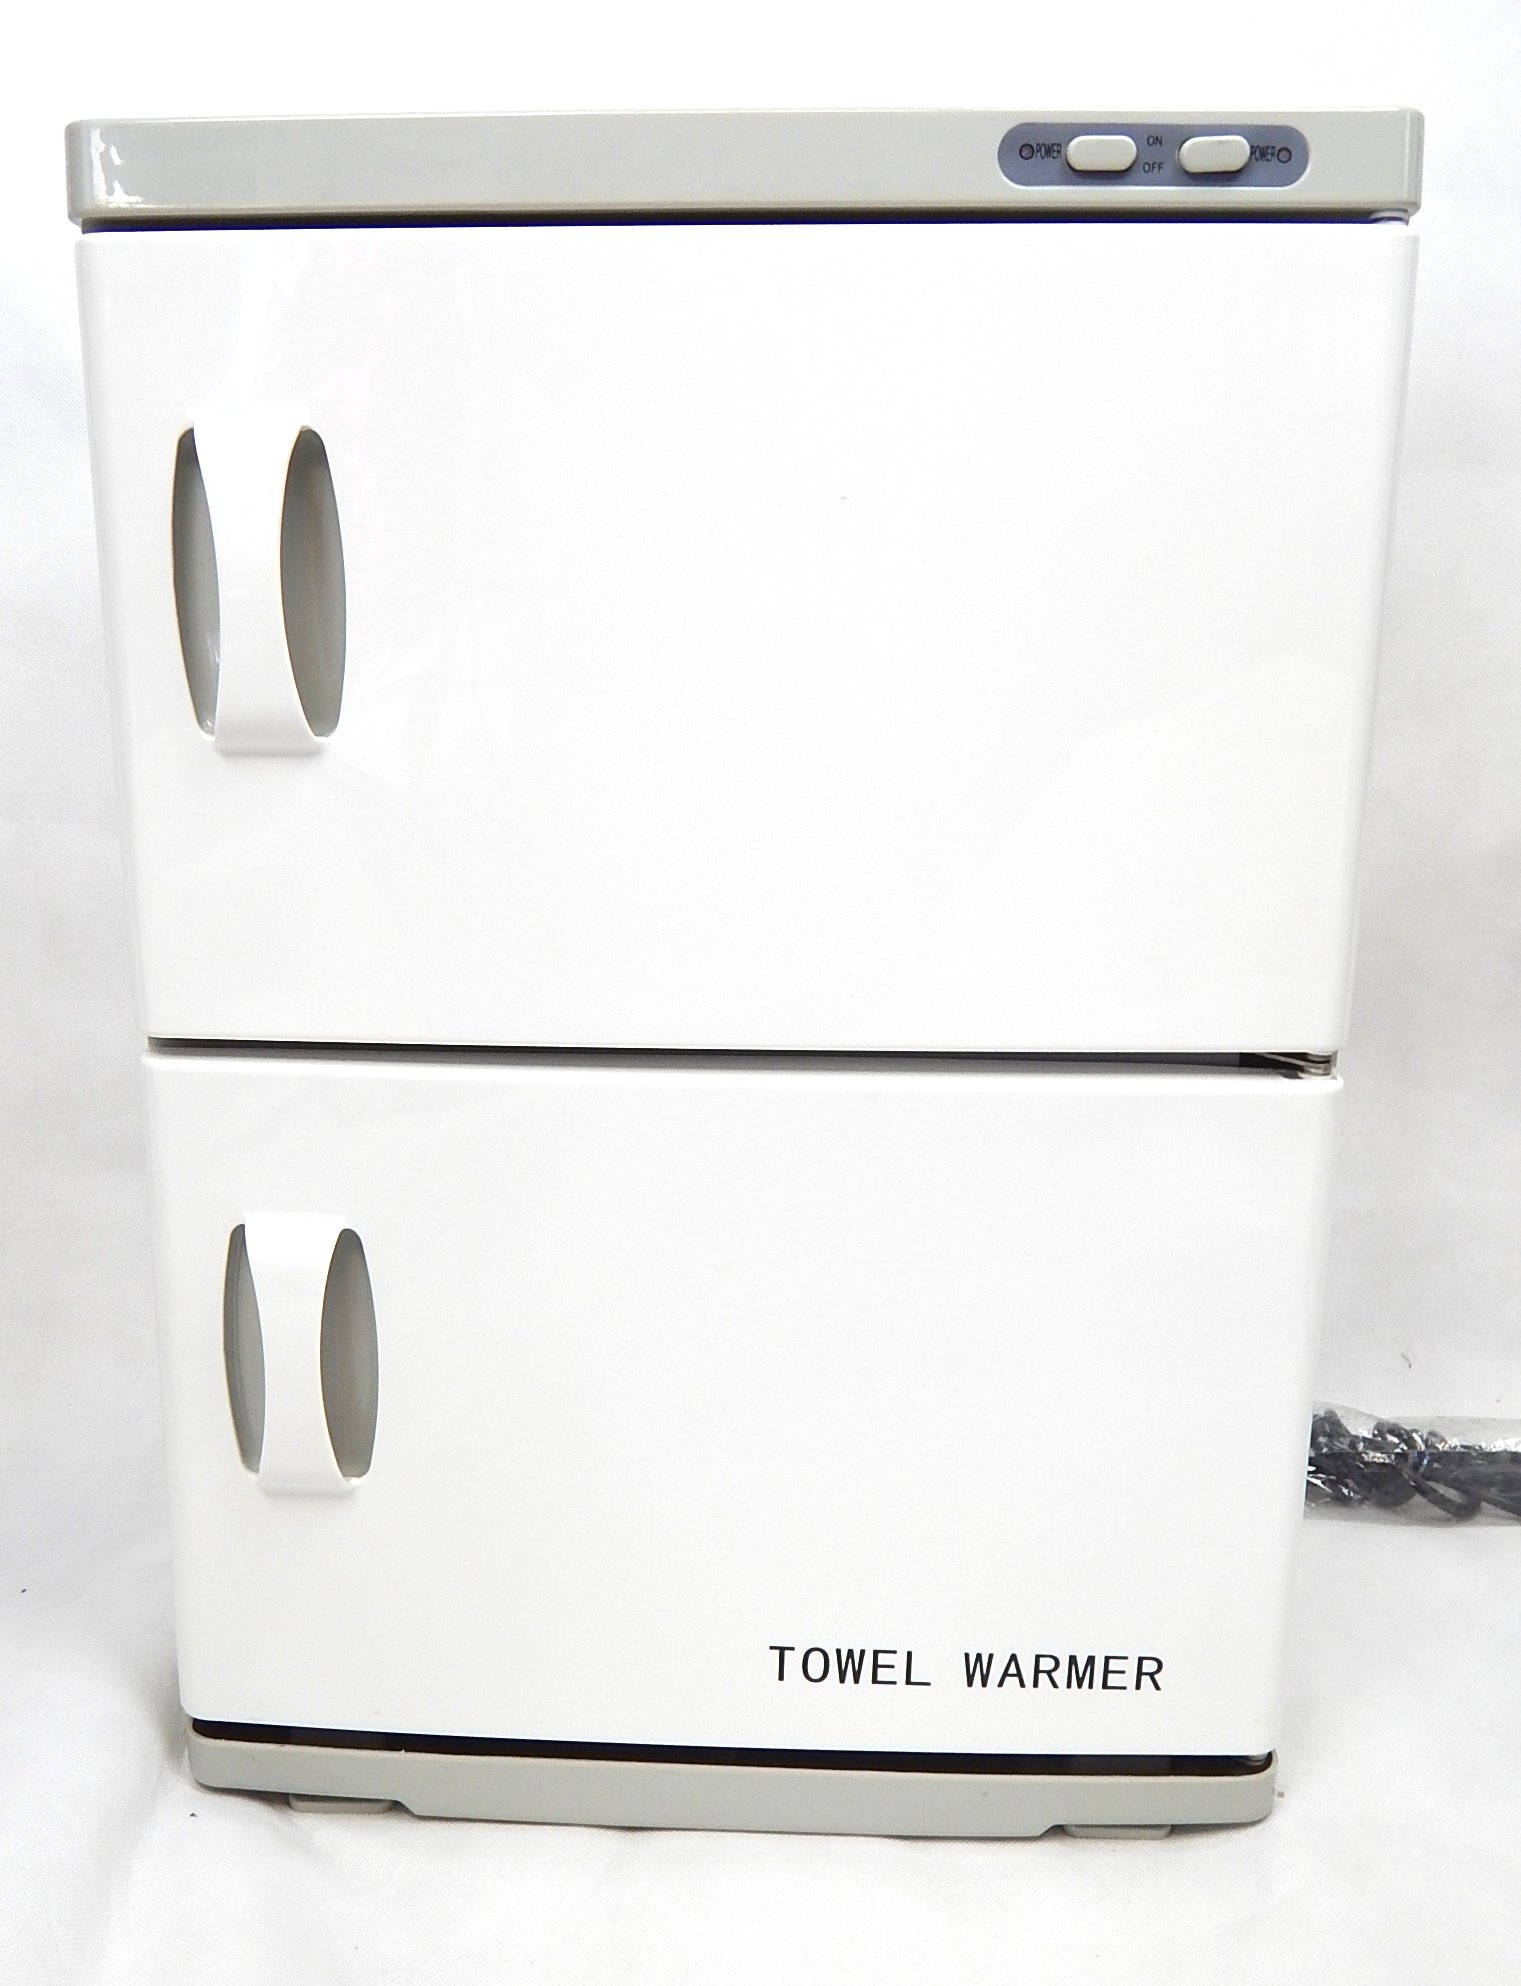 TOWEL WARMER FOR FACIAL TOWEL